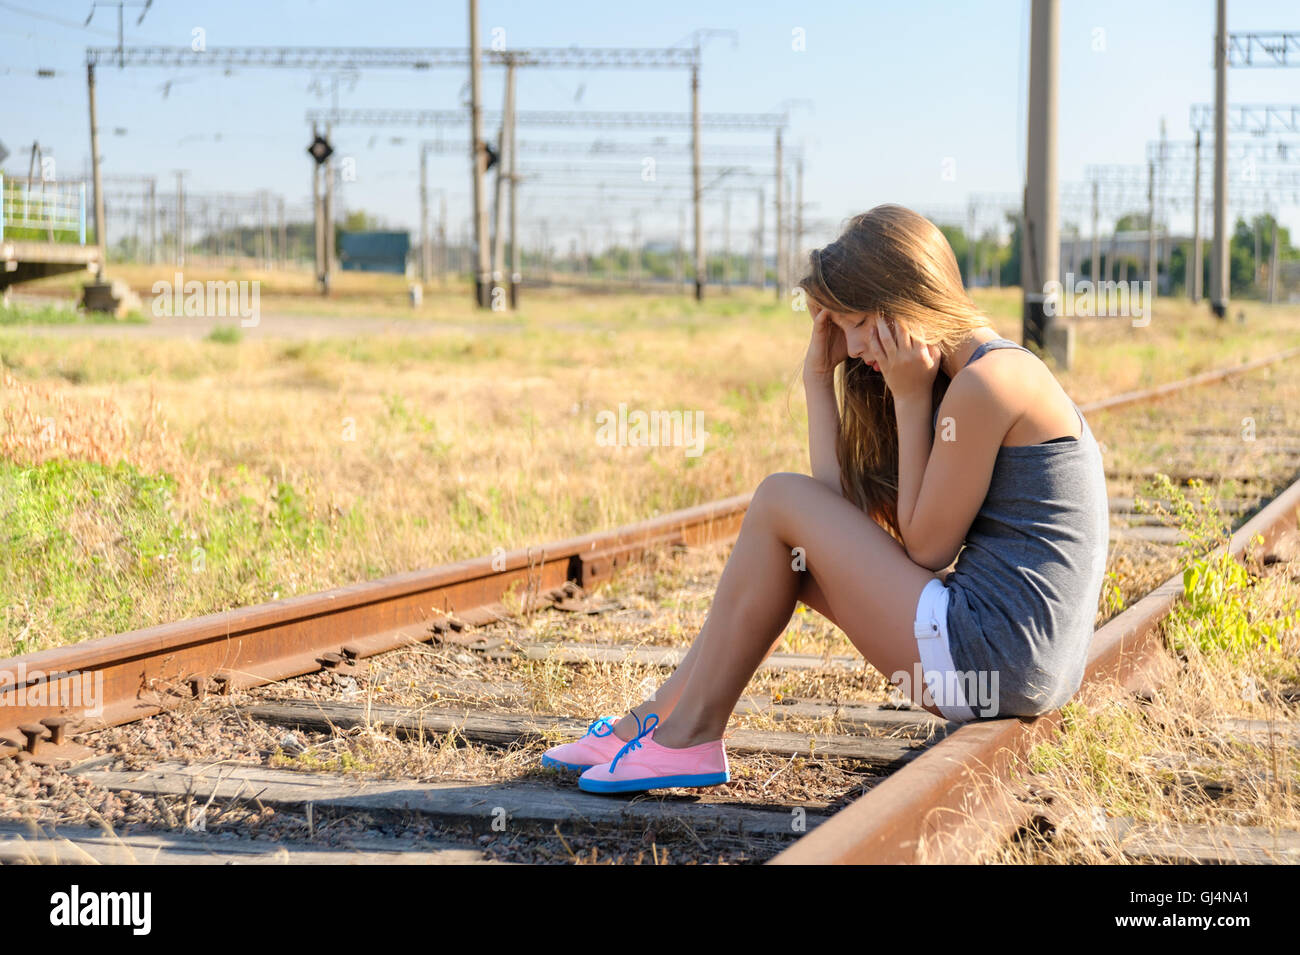 Upset teenager girl sitting on rail track in countryside - Stock Image